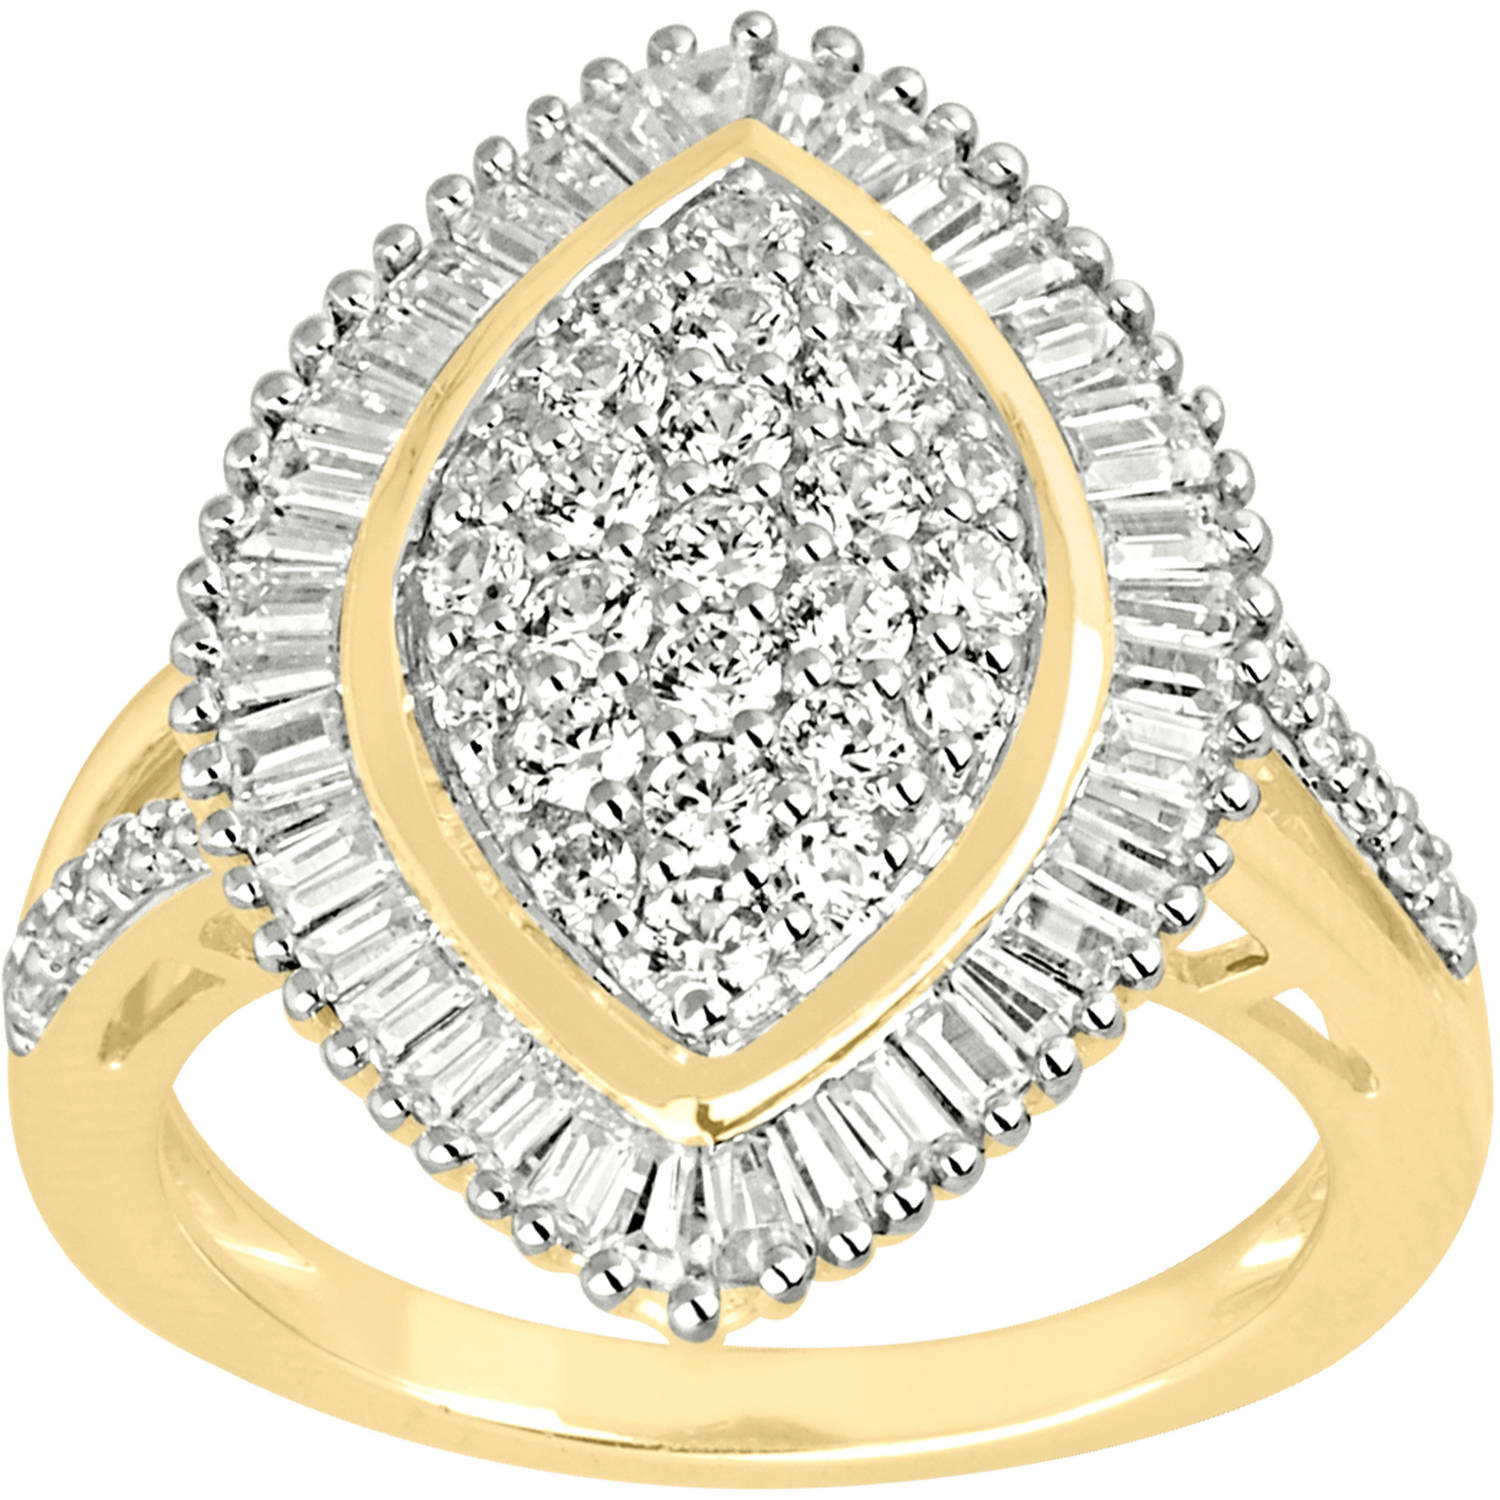 1-1/4 Carat T.W. Diamond 10kt Yellow Gold Important Statement Ring